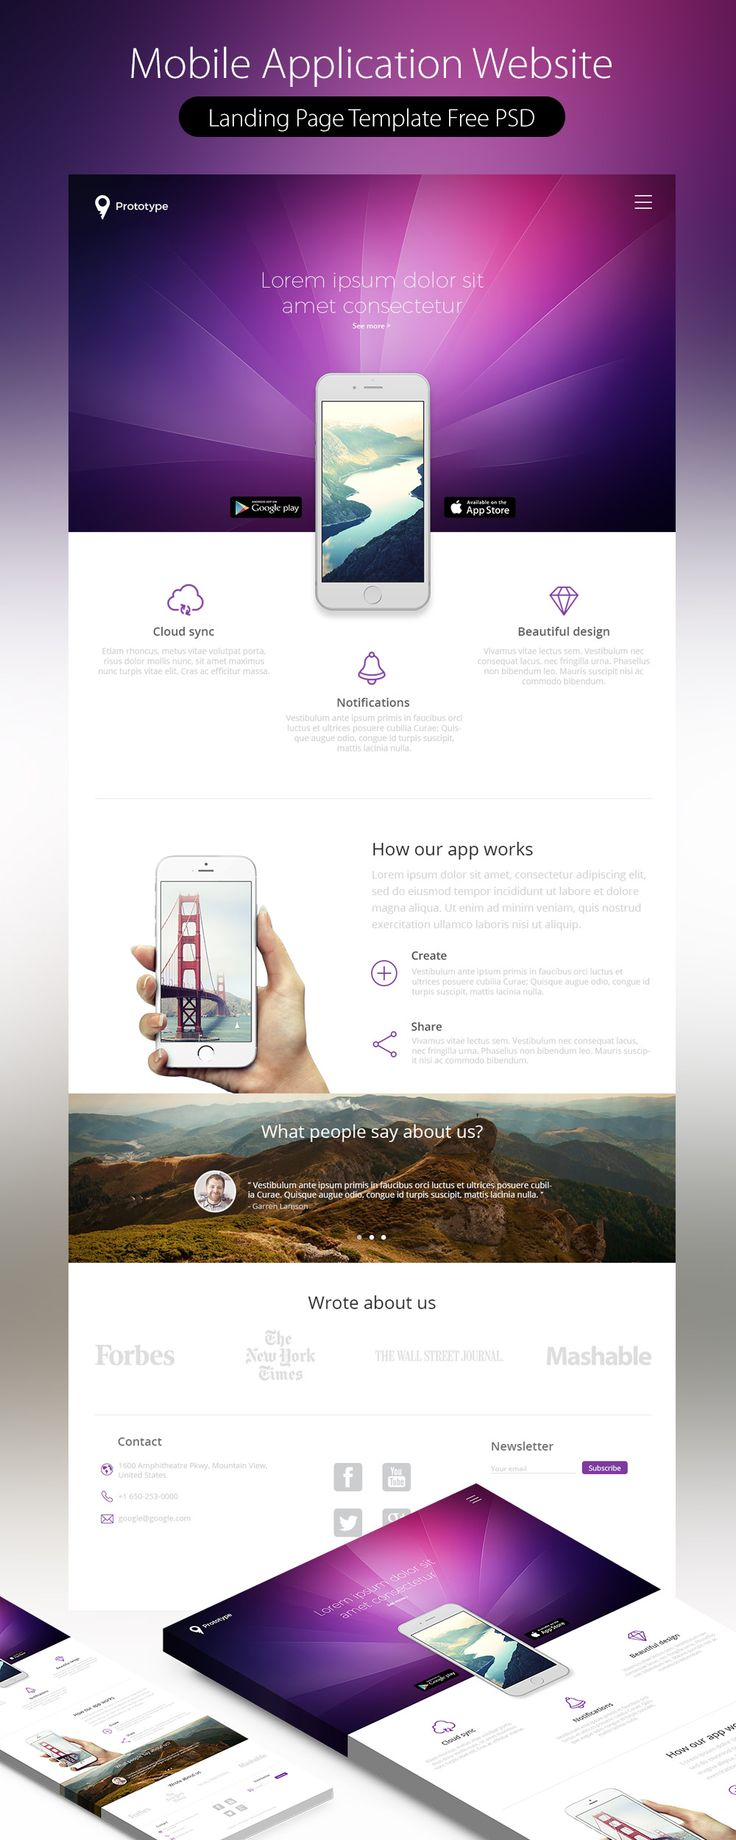 Mobile Application Landing Page Template Free PSD